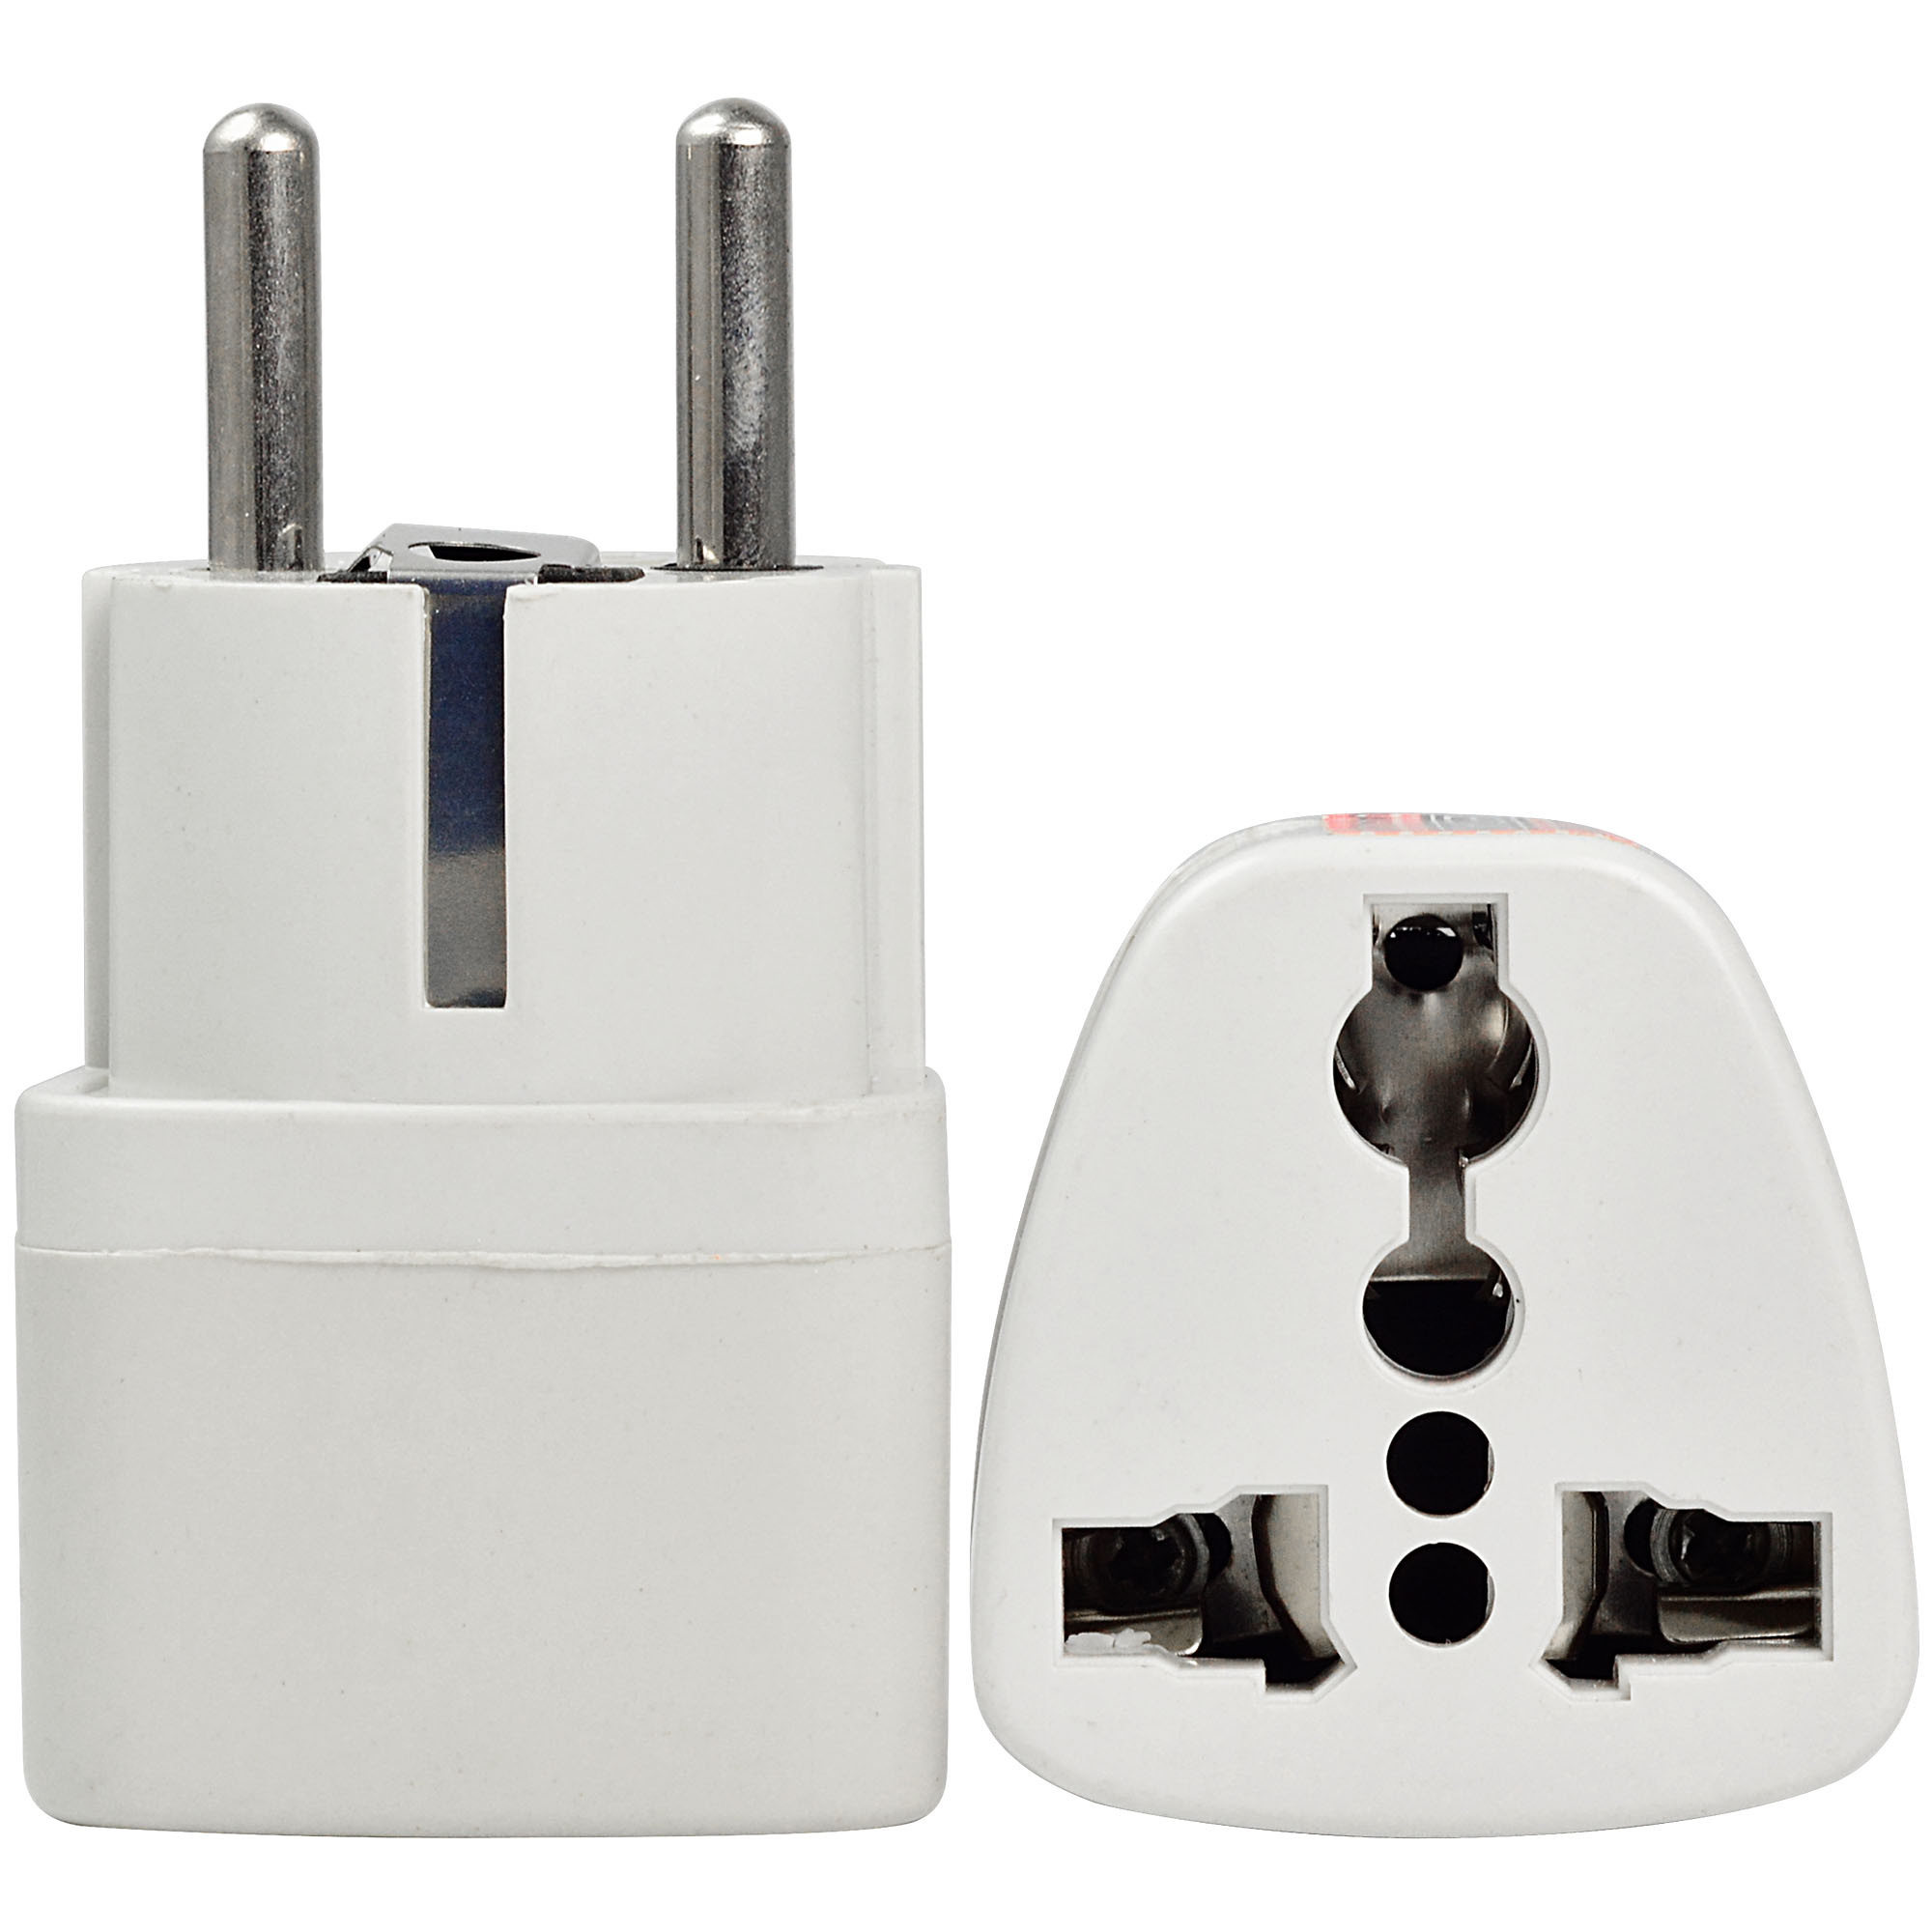 Universal Travel Plug Power Adapter Converter Wall Plug